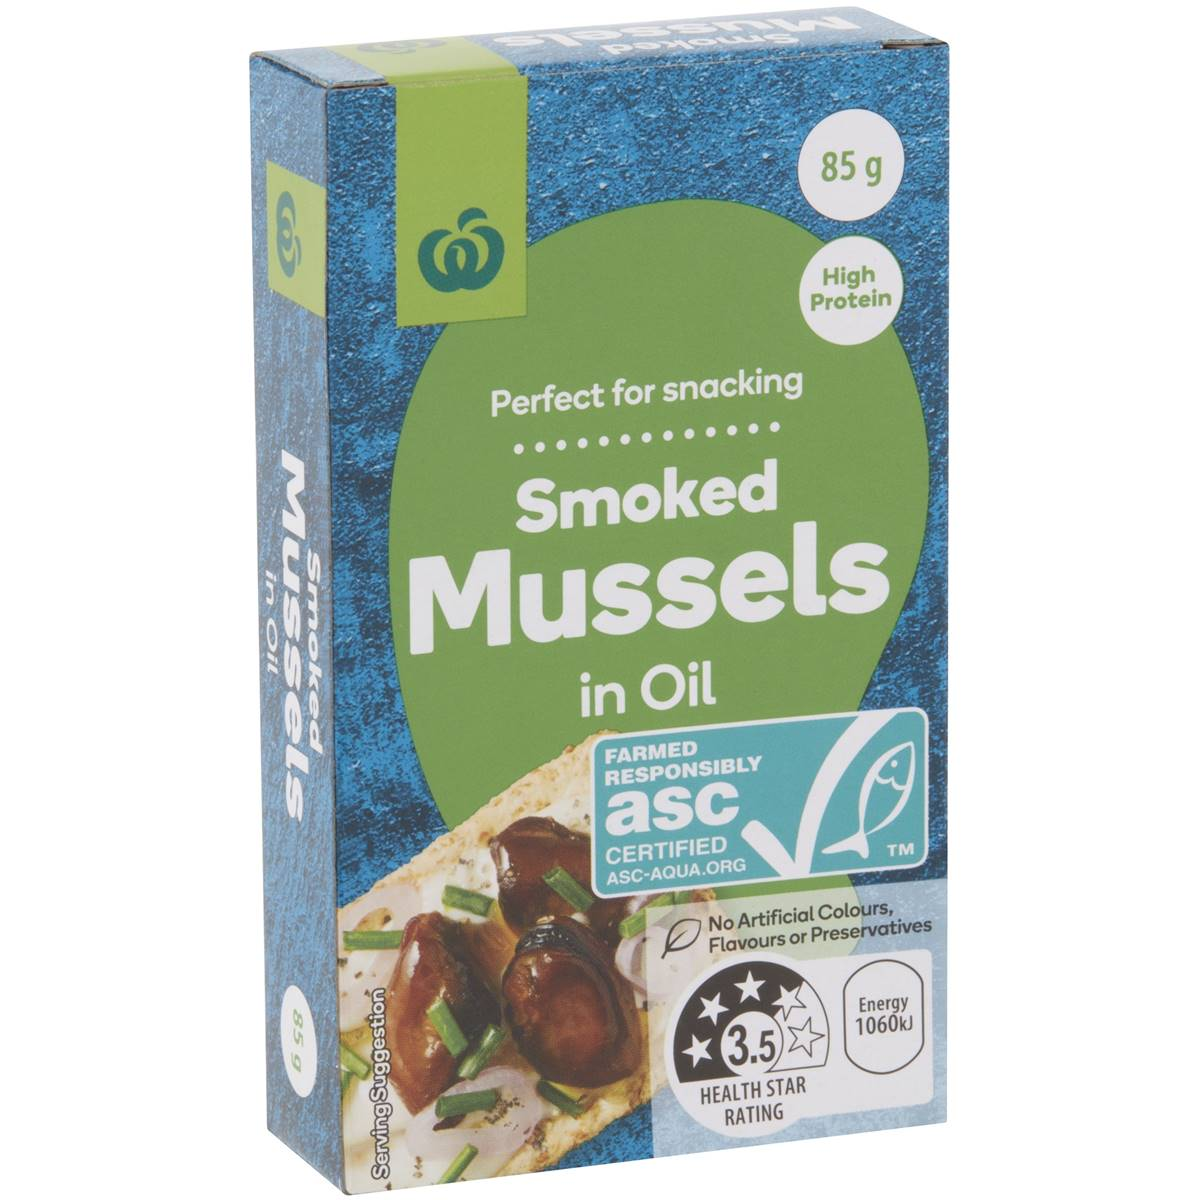 Woolworths Delivery Time Woolworths Smoked Mussels In Oil Woolworths